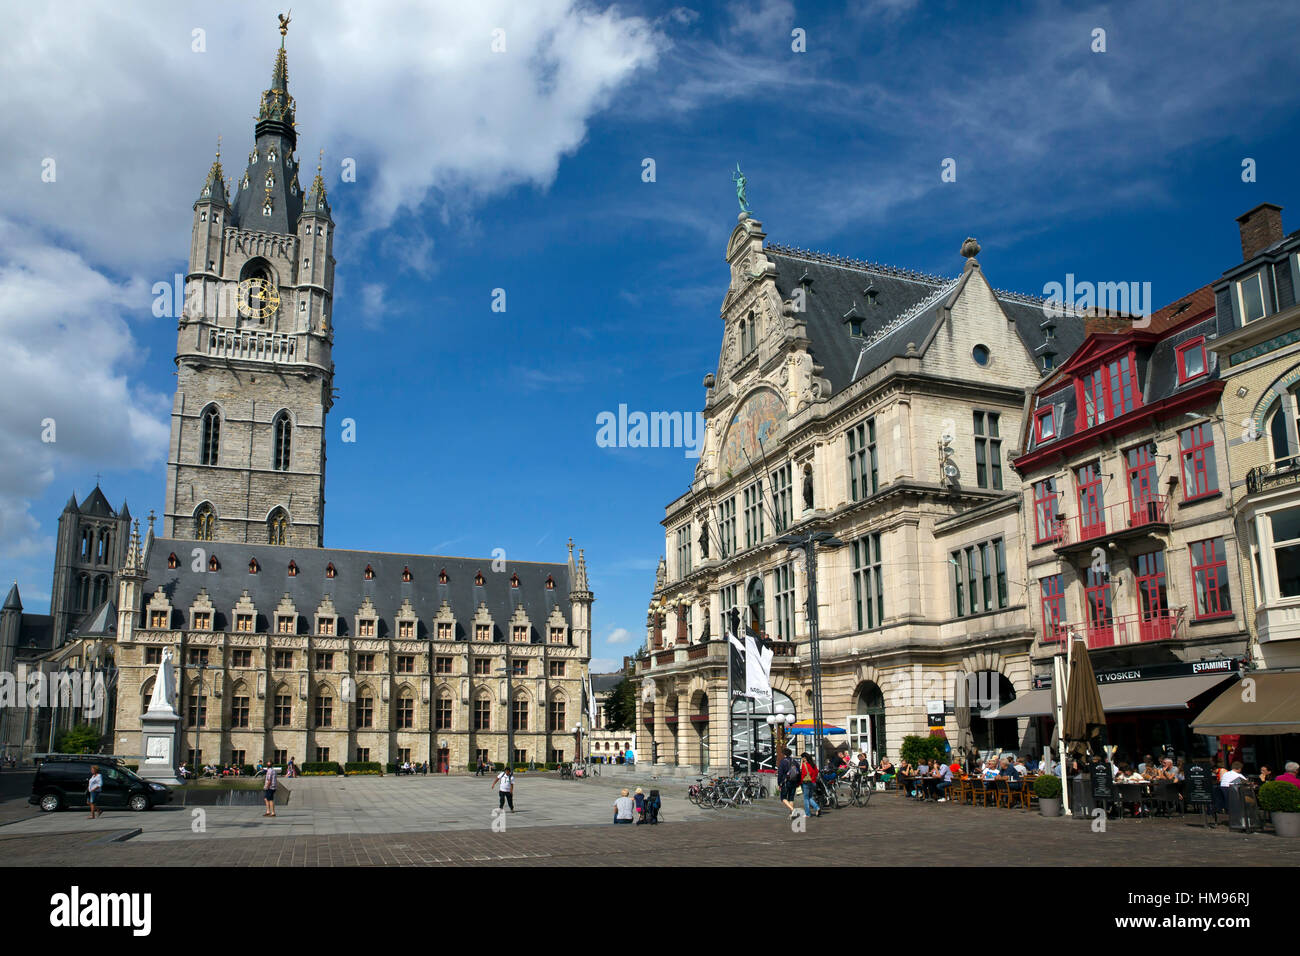 Belfry Tower in Saint Bavo's square, city centre, Ghent, West Flanders, Belgium - Stock Image